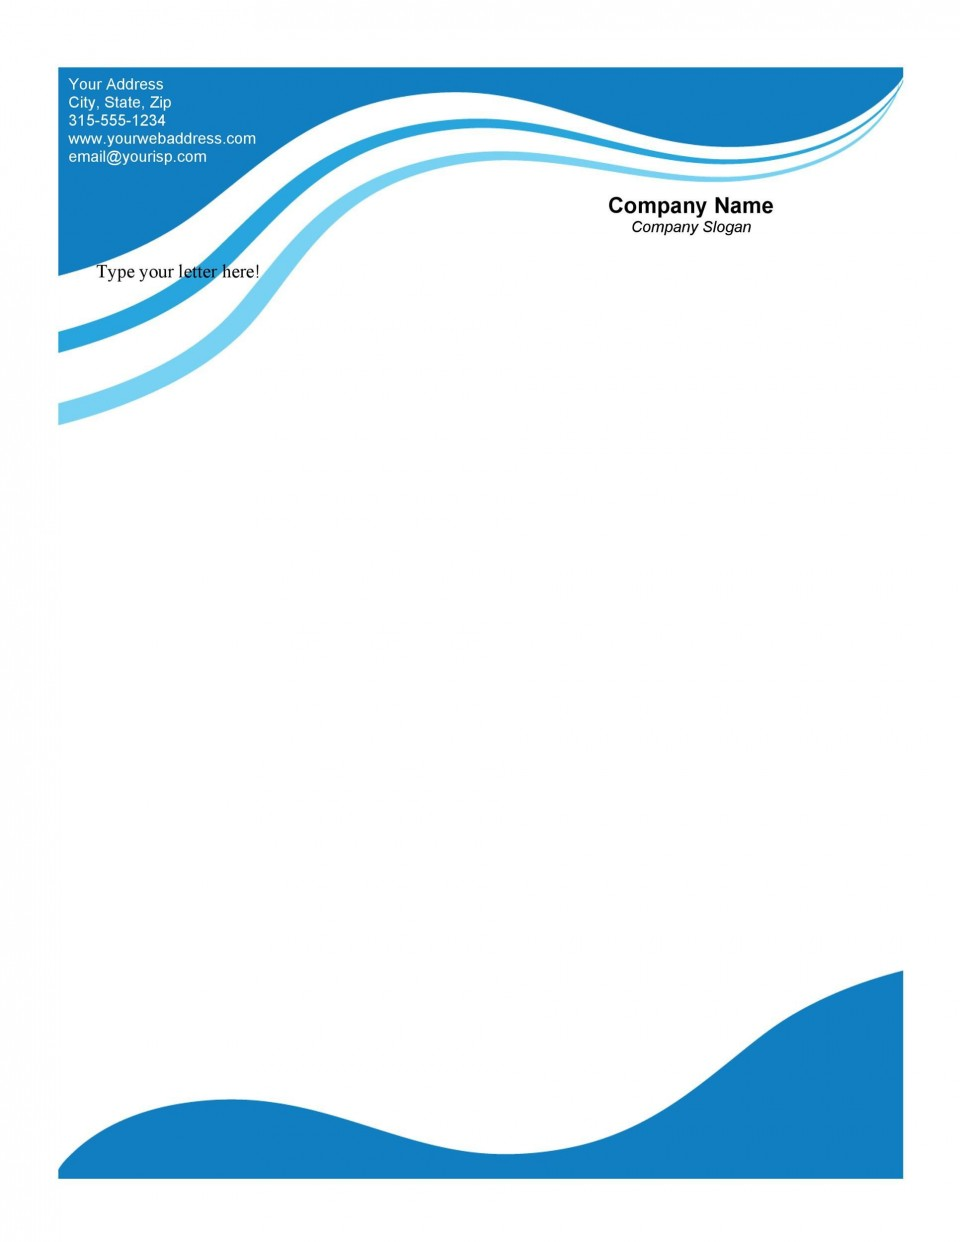 007 Excellent Letterhead Template Free Download Doc High Def  Company Format Doctor960